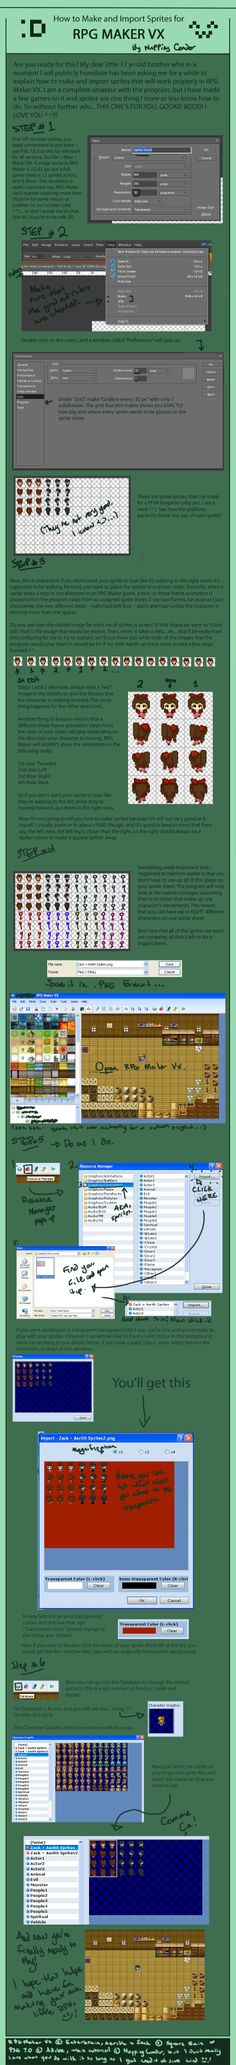 Rpg maker mv animation system getting started how to beginner sprite tutorial rpg maker vx by nappingcondor on deviantart sciox Choice Image